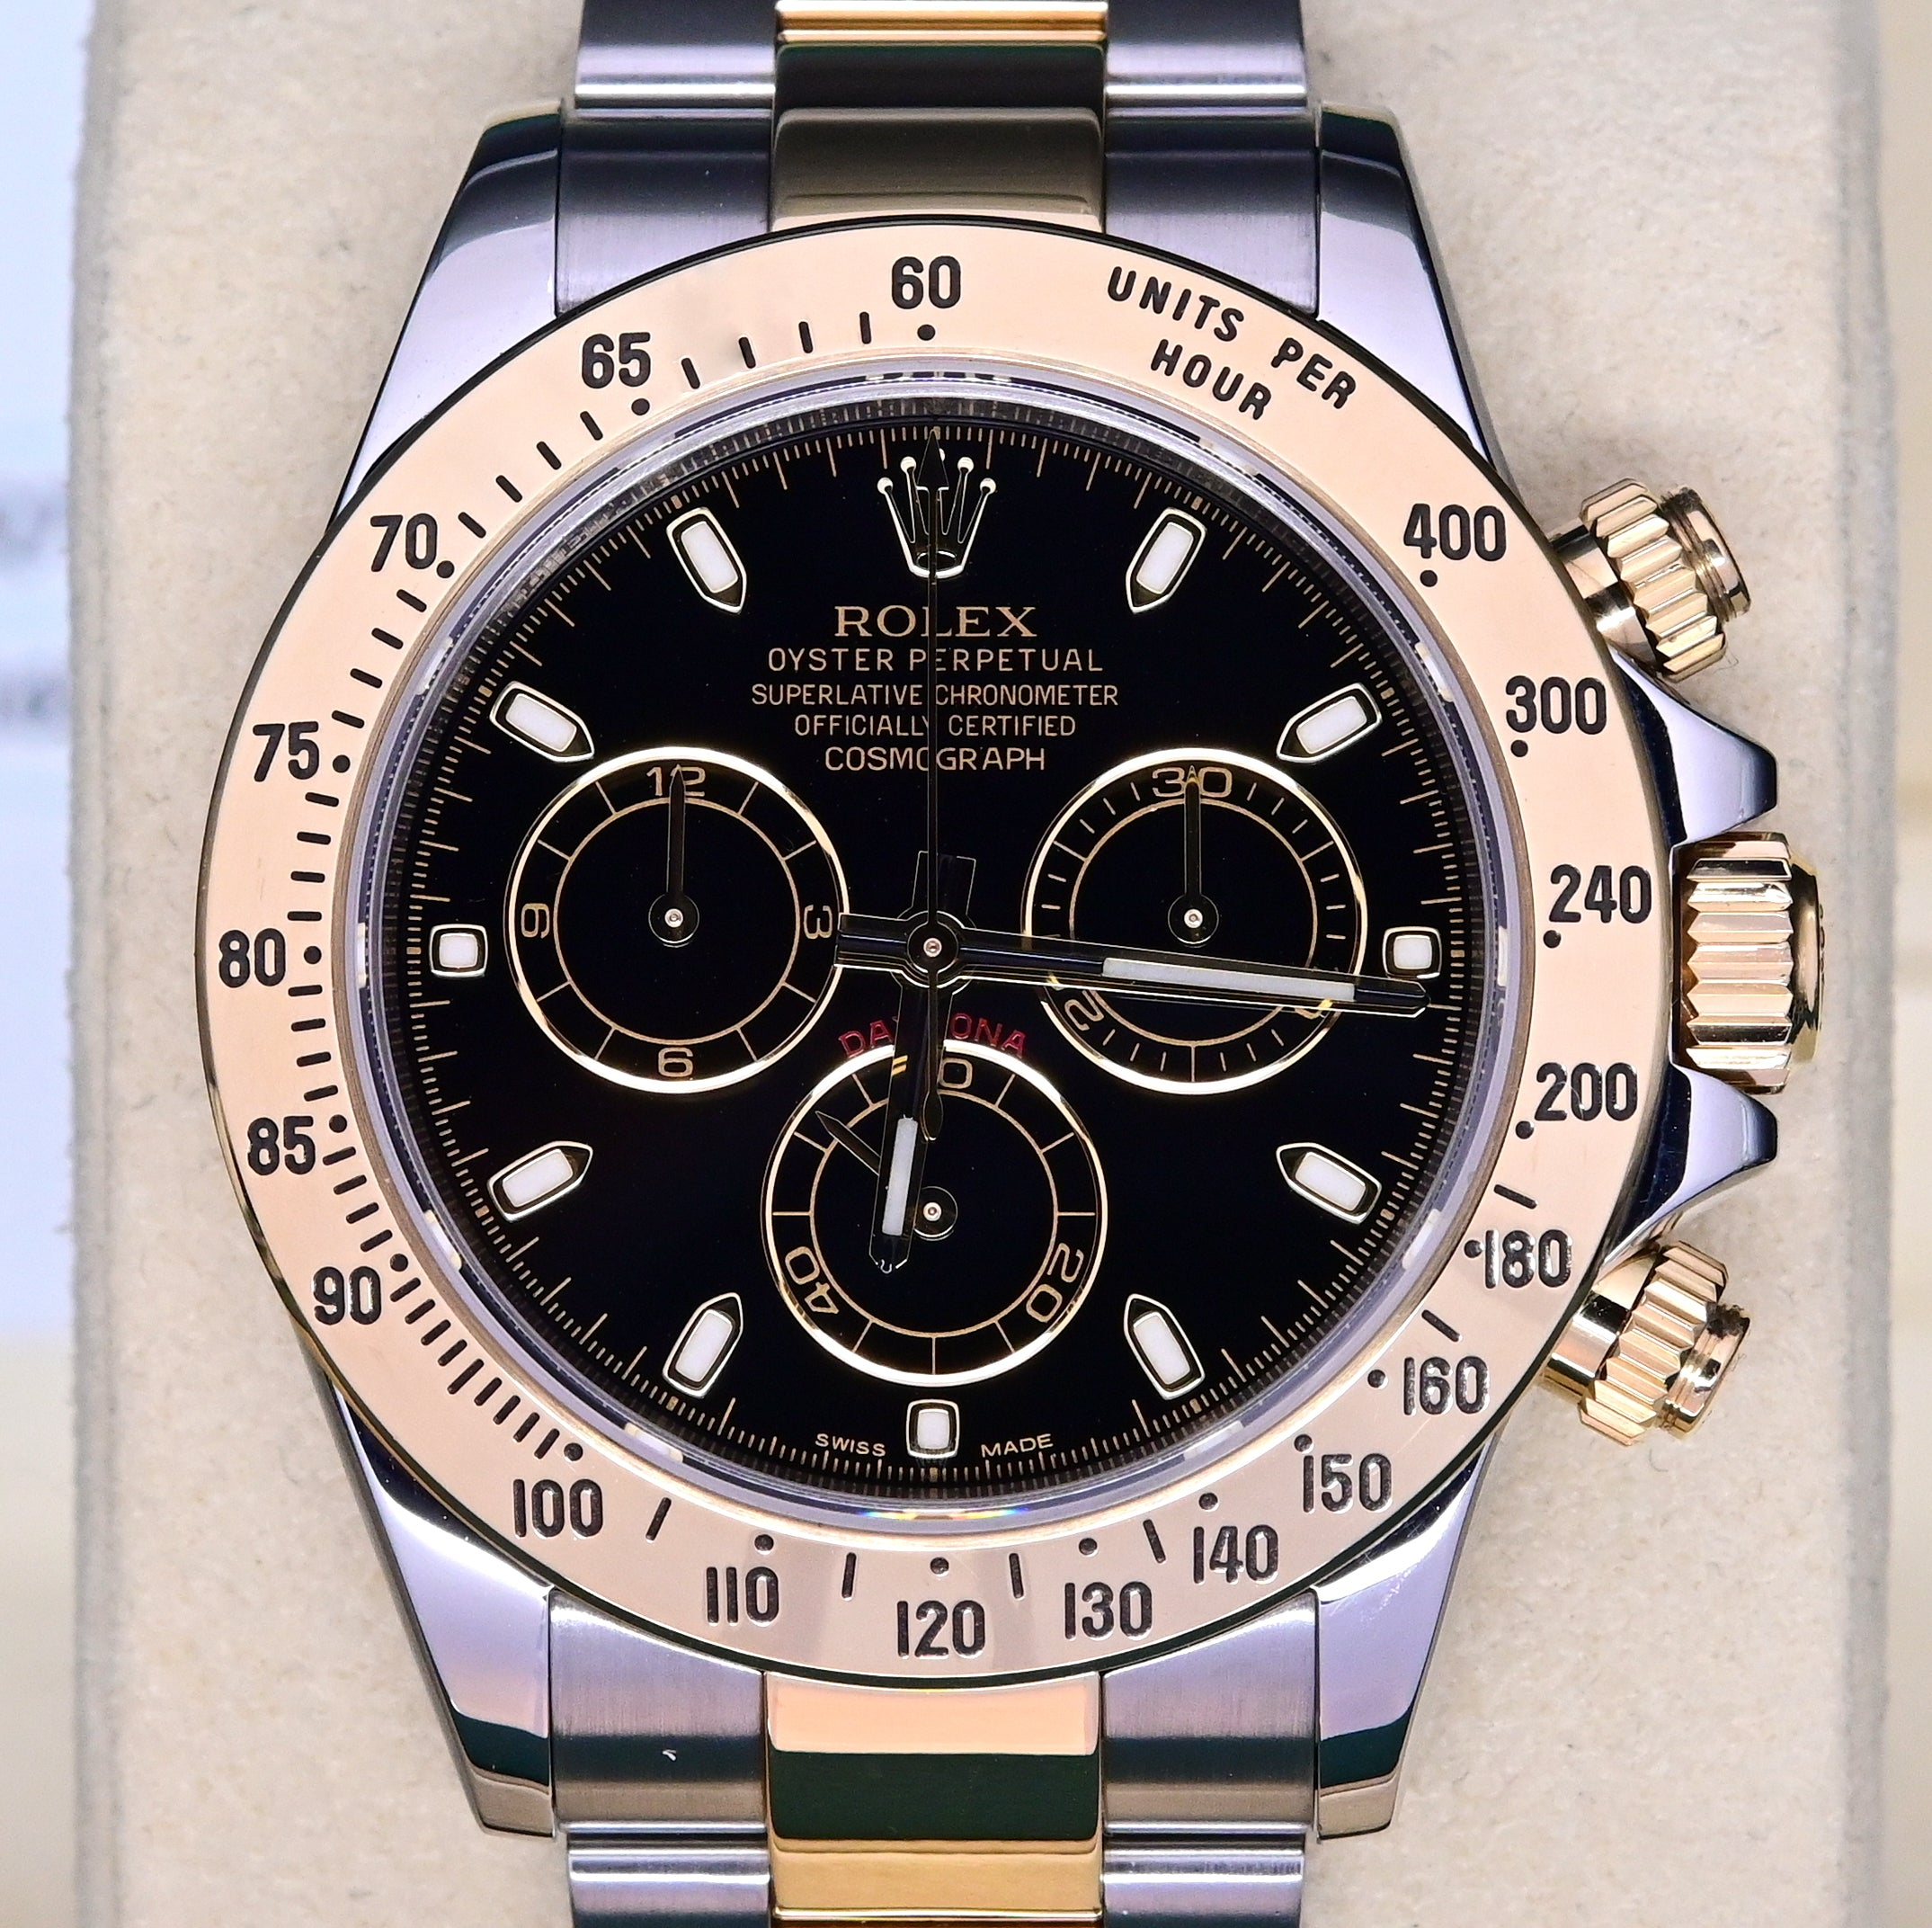 [Pre-Owned Watch] Rolex Cosmograph Daytona 40mm 116523 Black Dial (Out of Production)